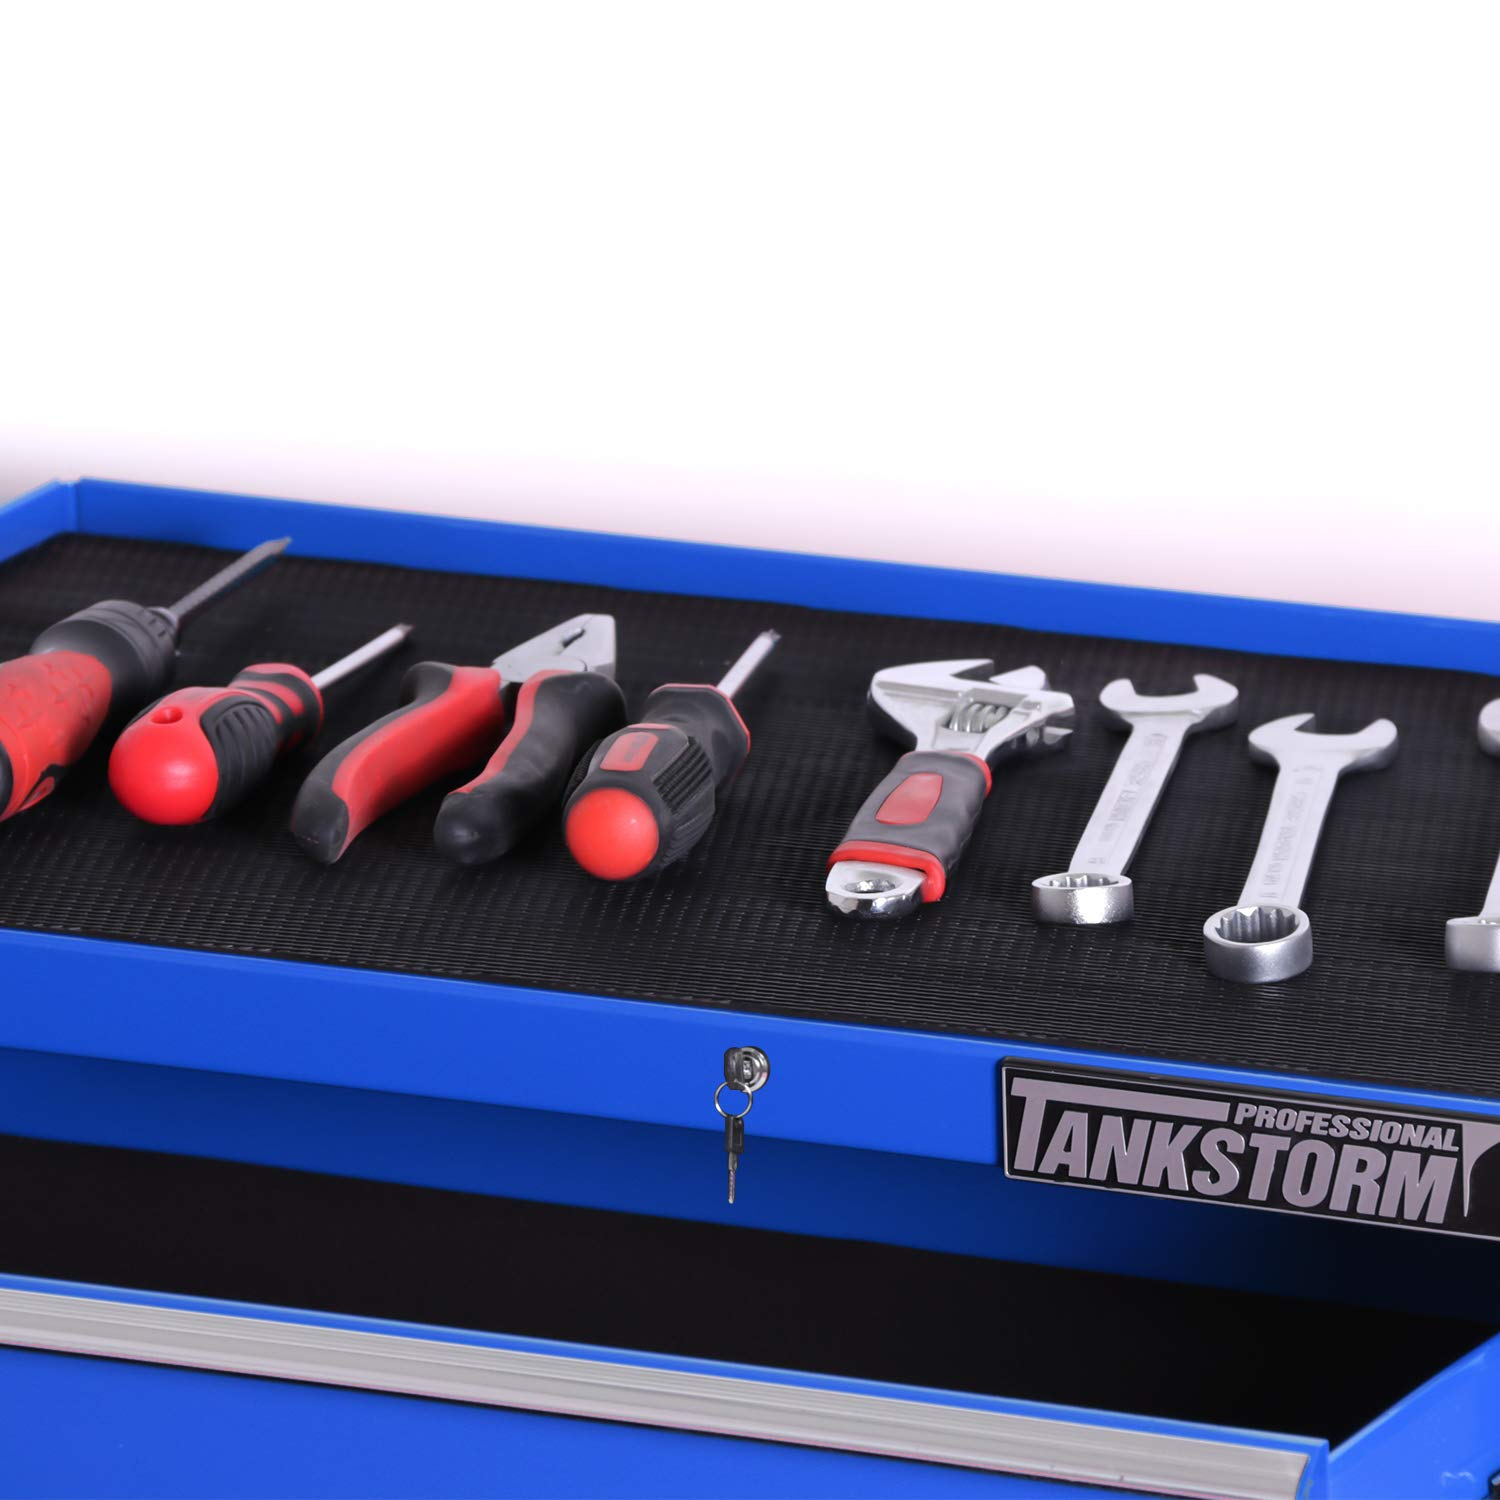 TANKSTORM Tool Chest Heavy Duty Cart Steel Rolling Tool Box with Lockable Drawers and Doors (TZ12A Blue) by TANKSTORM (Image #5)